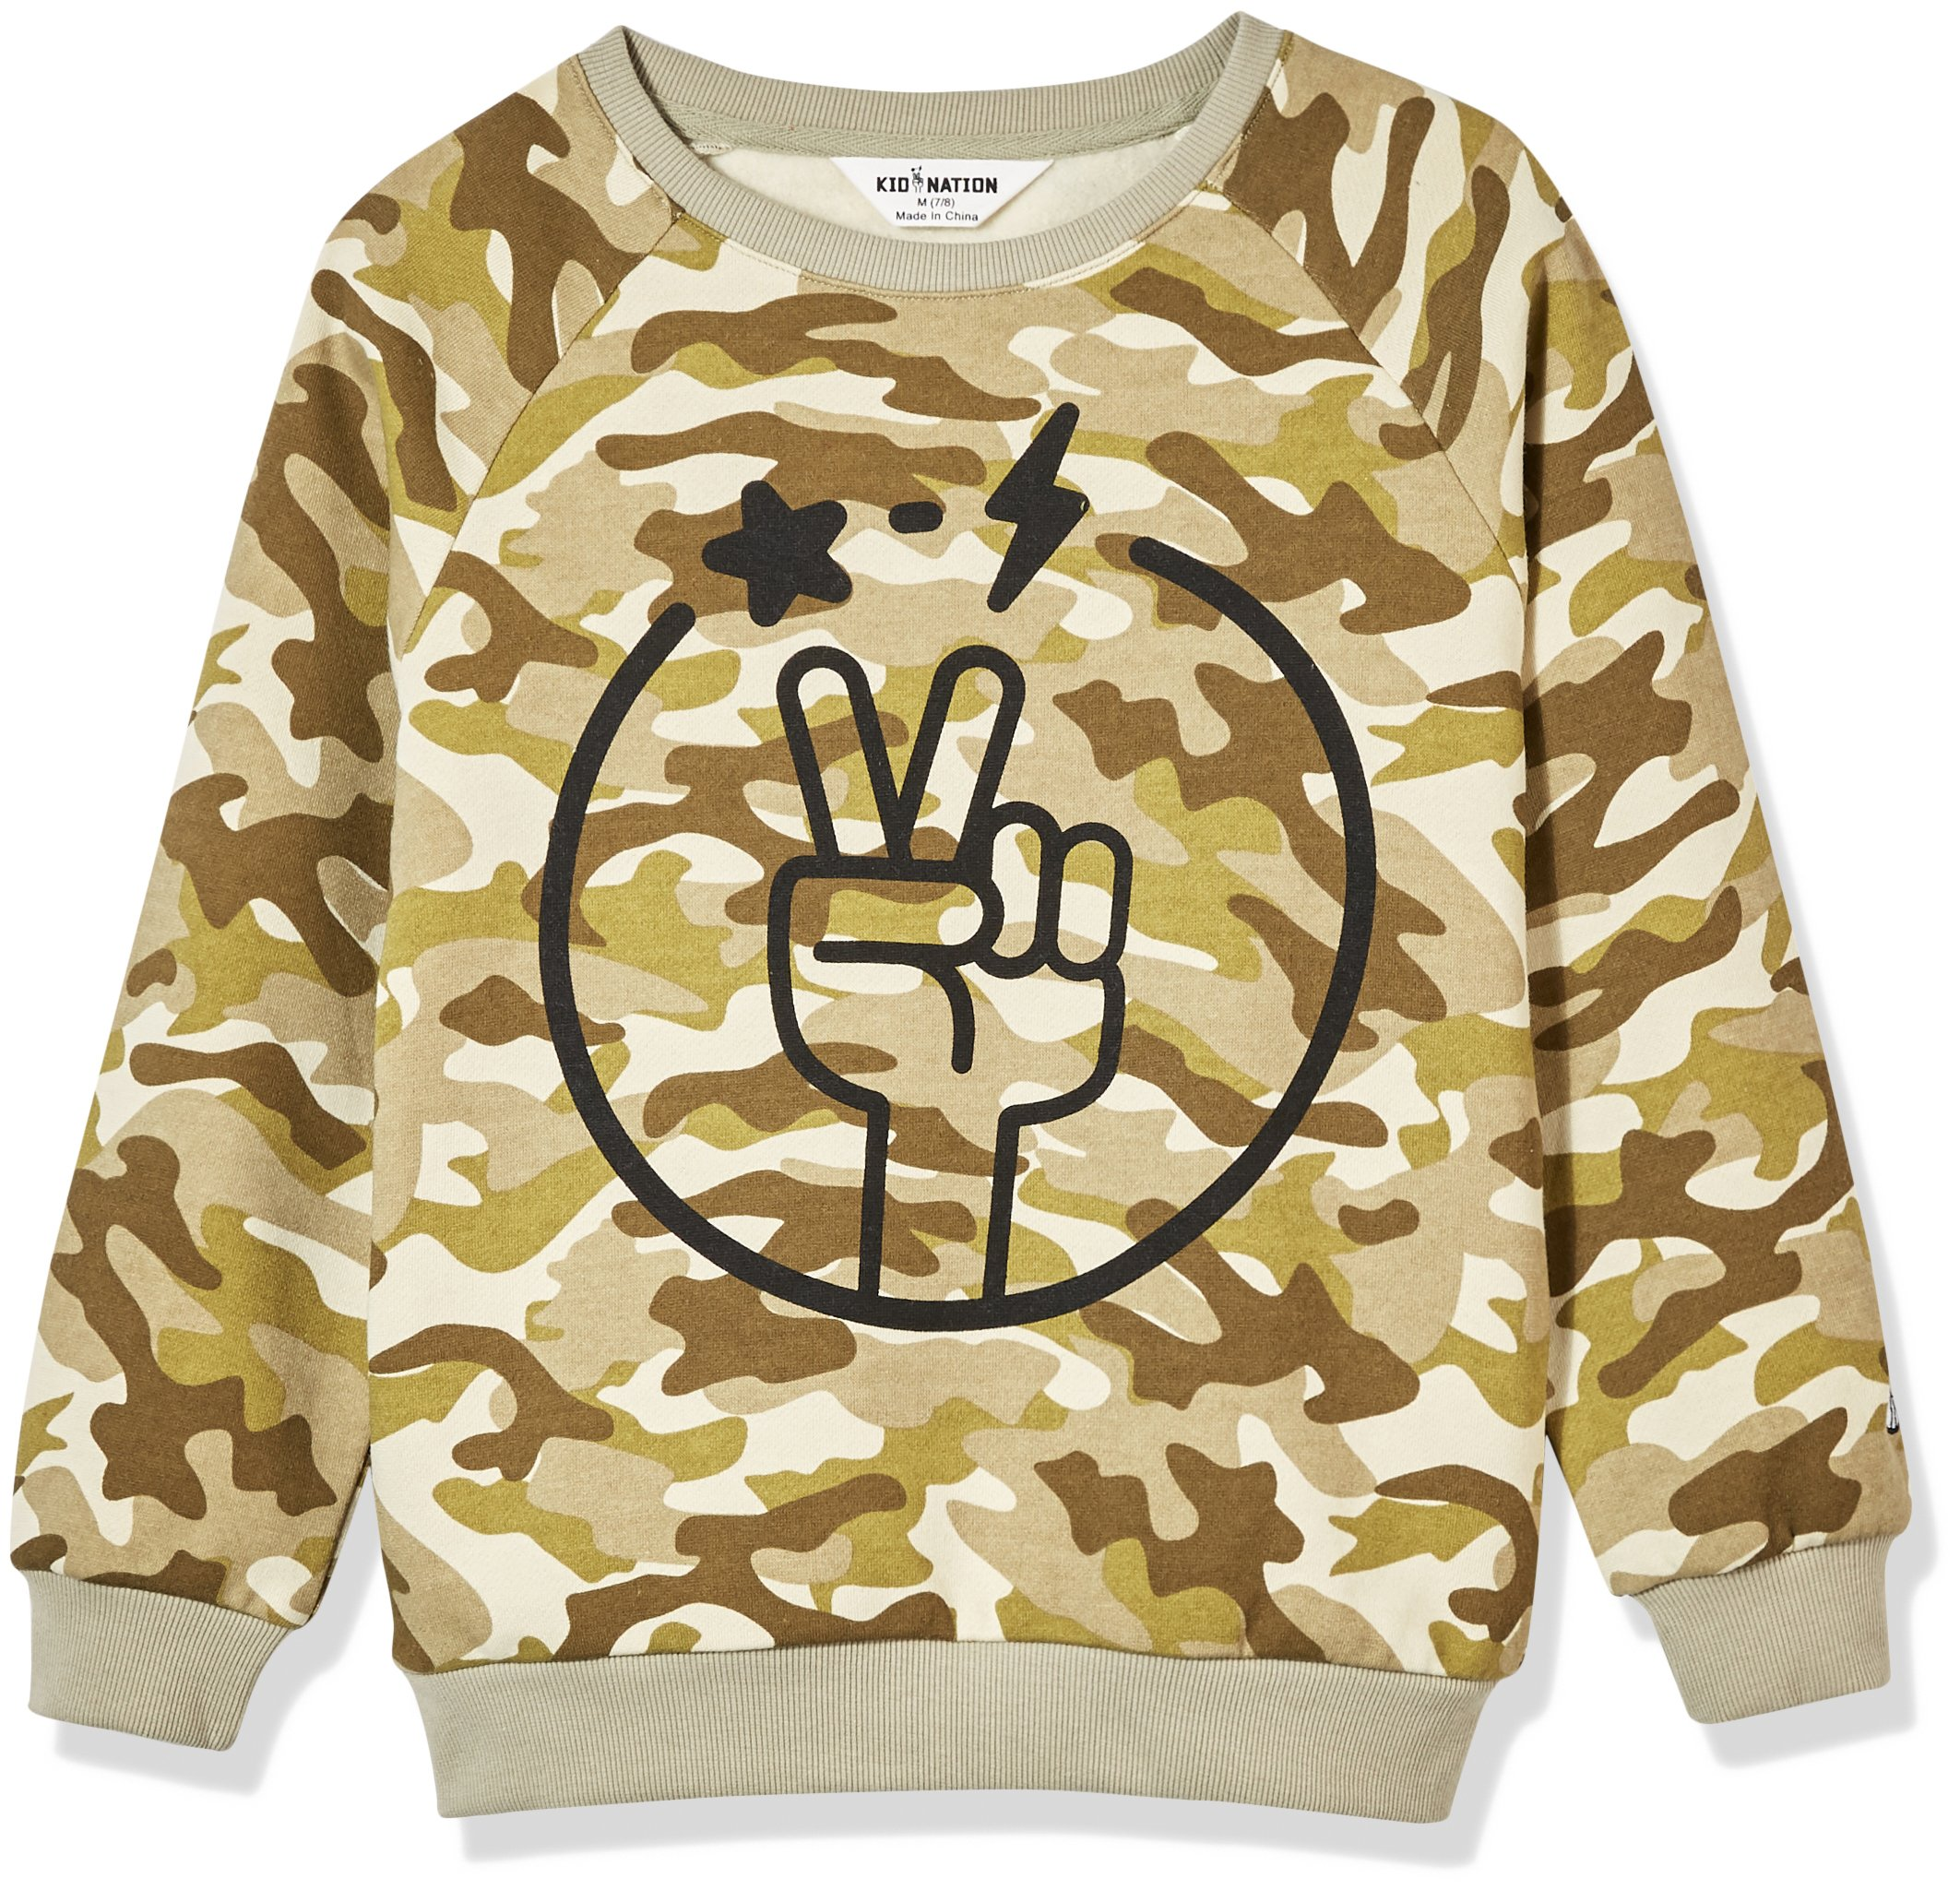 Kid Nation Kids' Allover Printed Graphic Camo Pullover Sweatshirt for Boys Or Girls S Olive